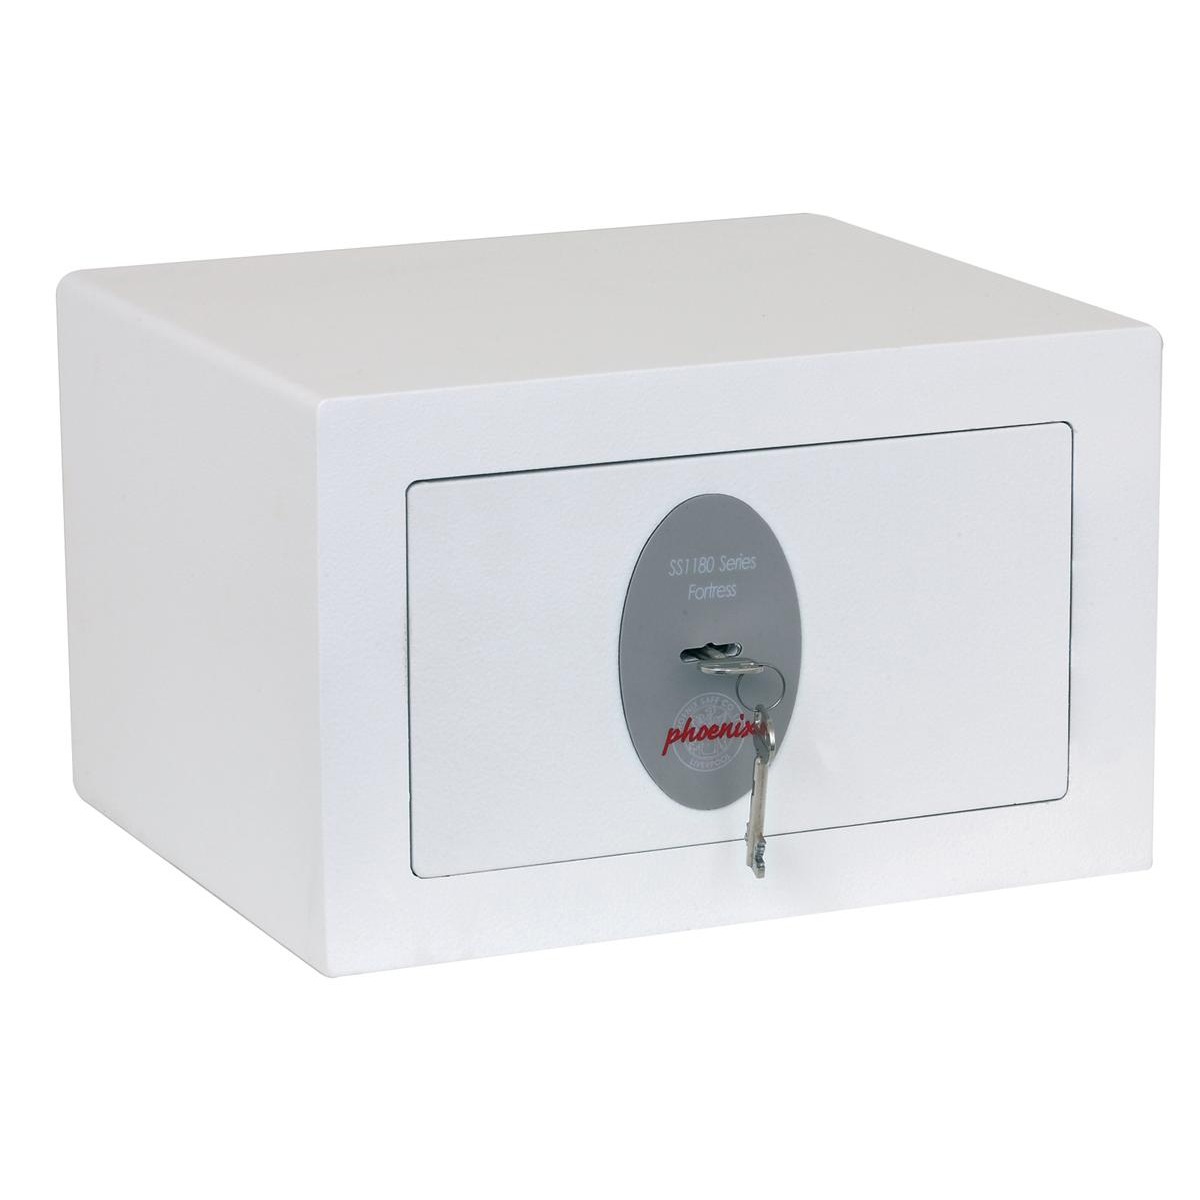 Key Store Phoenix Fortress High Security Safe Key Lock 7L Capacity 15kg W350xD300xH220MM Ref SS1181K